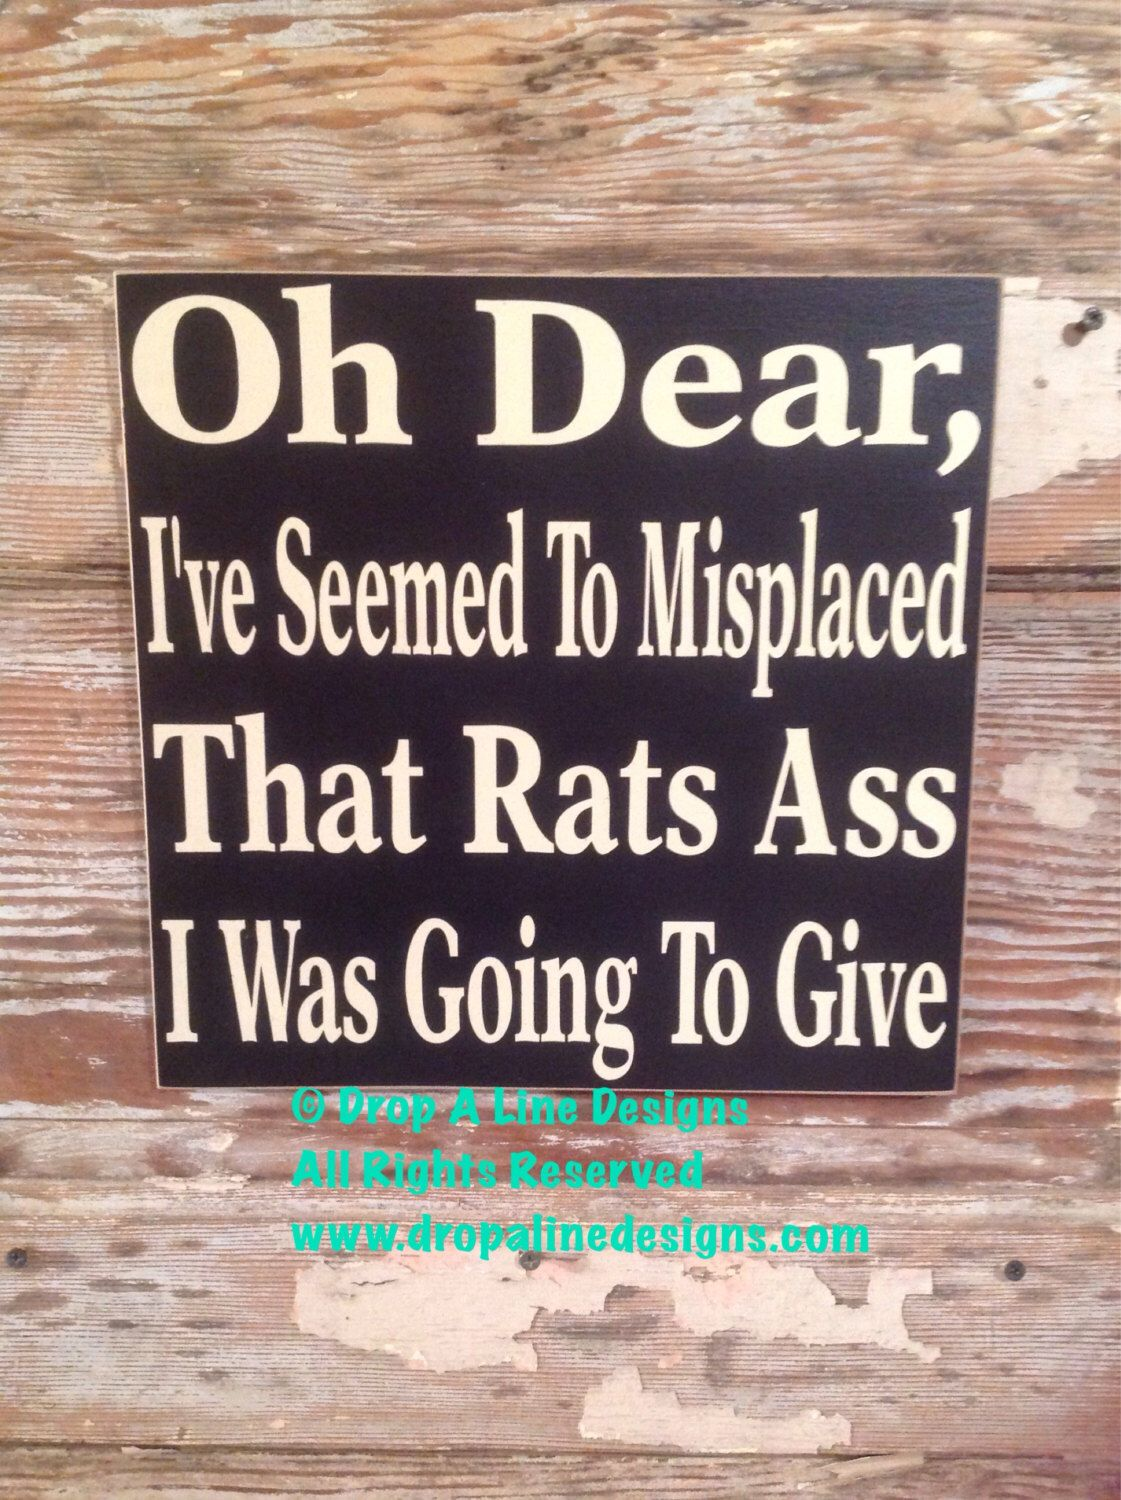 oh dear, i've seemed to misplaced that rats ass i was going